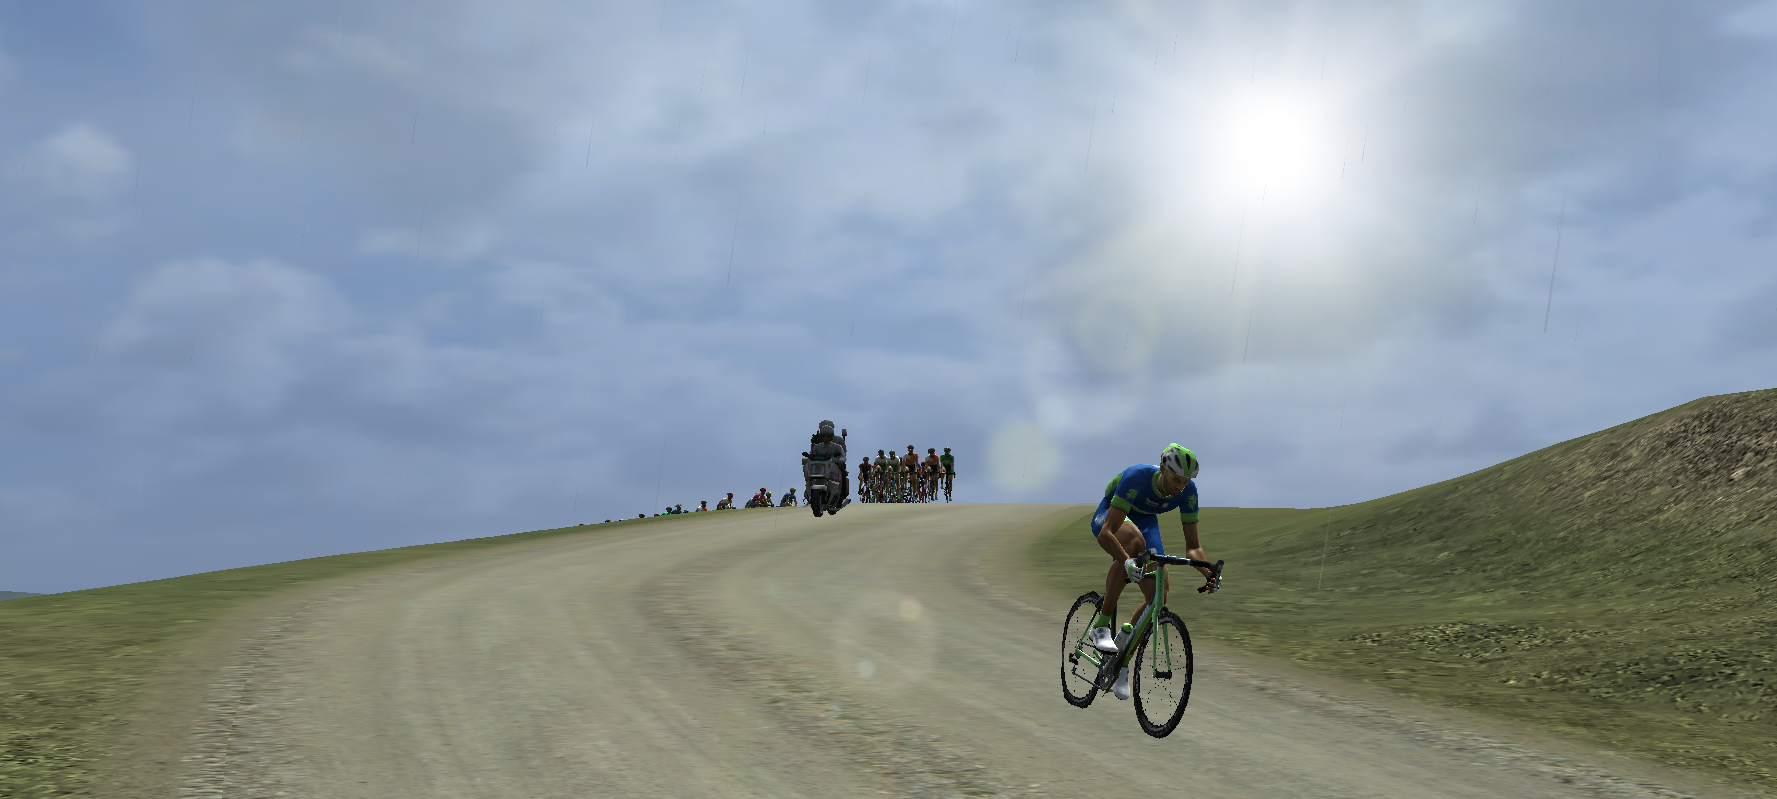 pcmdaily.com/images/mg/2016/Races/PCT/StradeBianche/Bianche_06.png